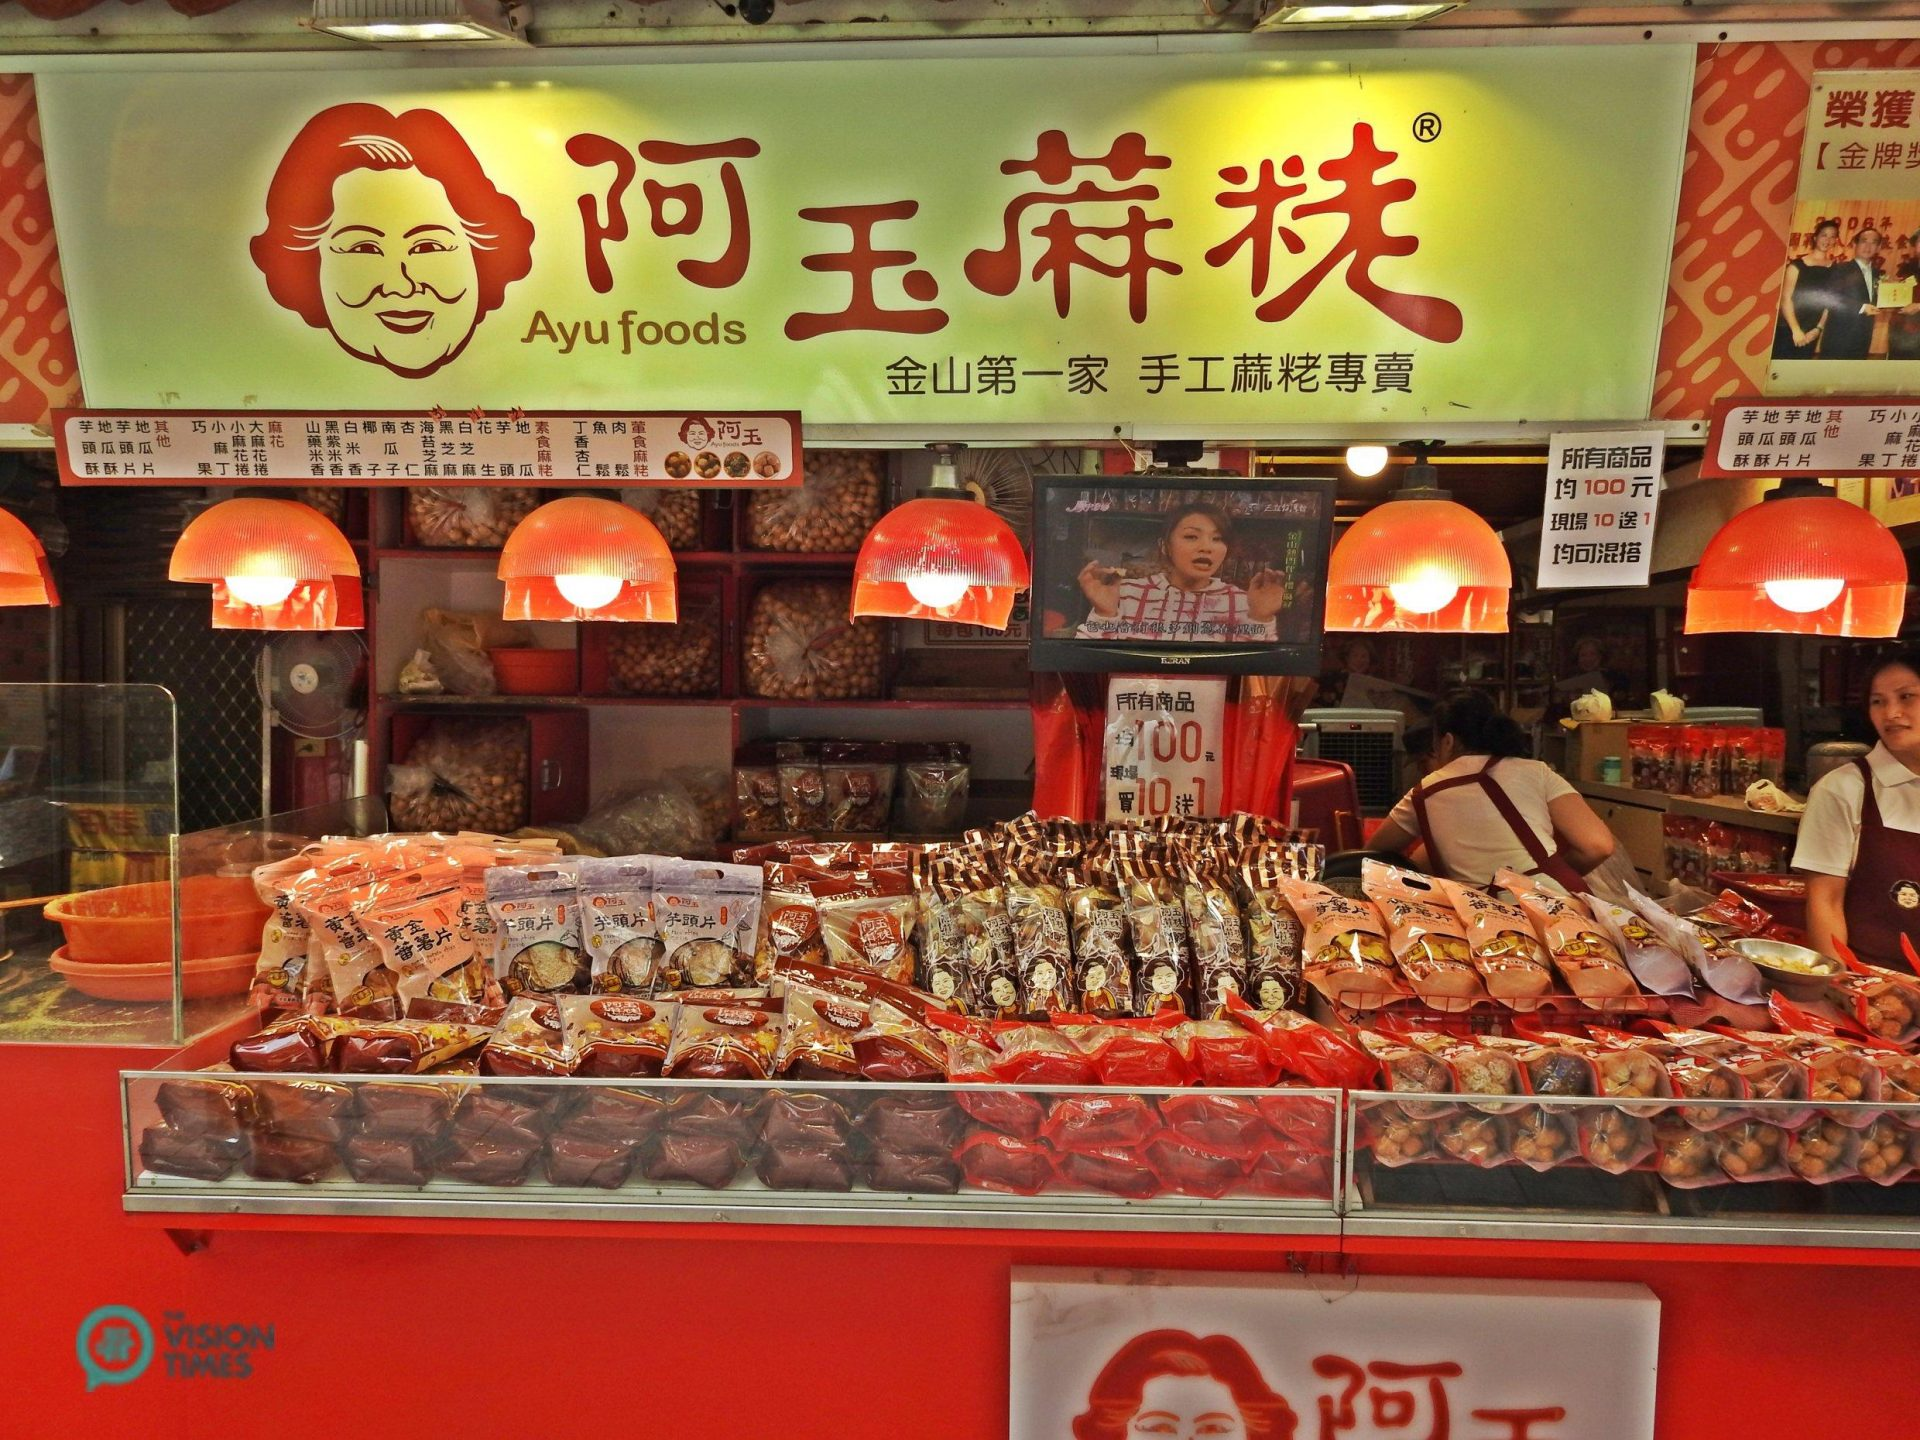 There are many stands selling a variety of traditional food and delicacies on Jinbaoli Old Street.(Image: Billy Shyu / Vision Times)